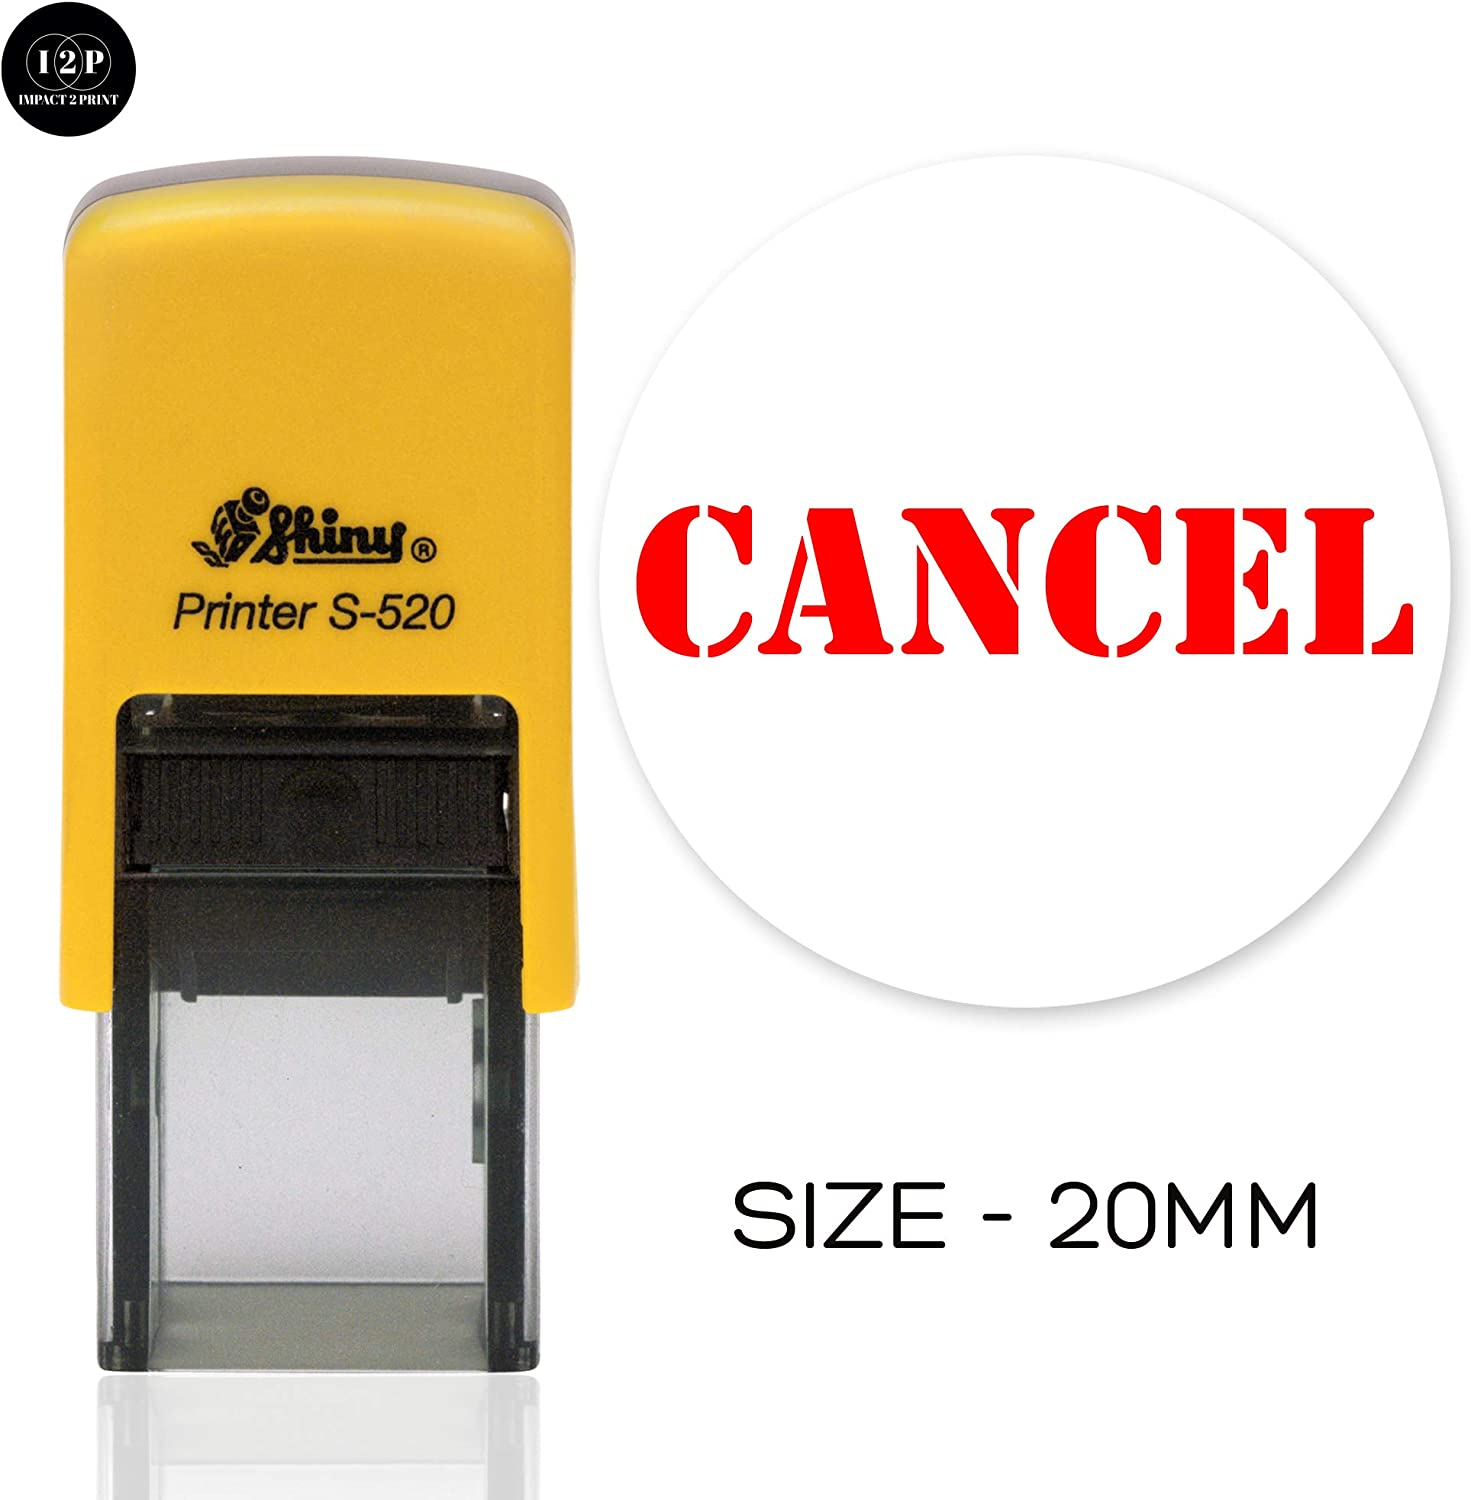 IMPACT2PRINT Shiny 842 UNPAID Self Inking Rubber Stamp Business Custom Stamp Office Stationary